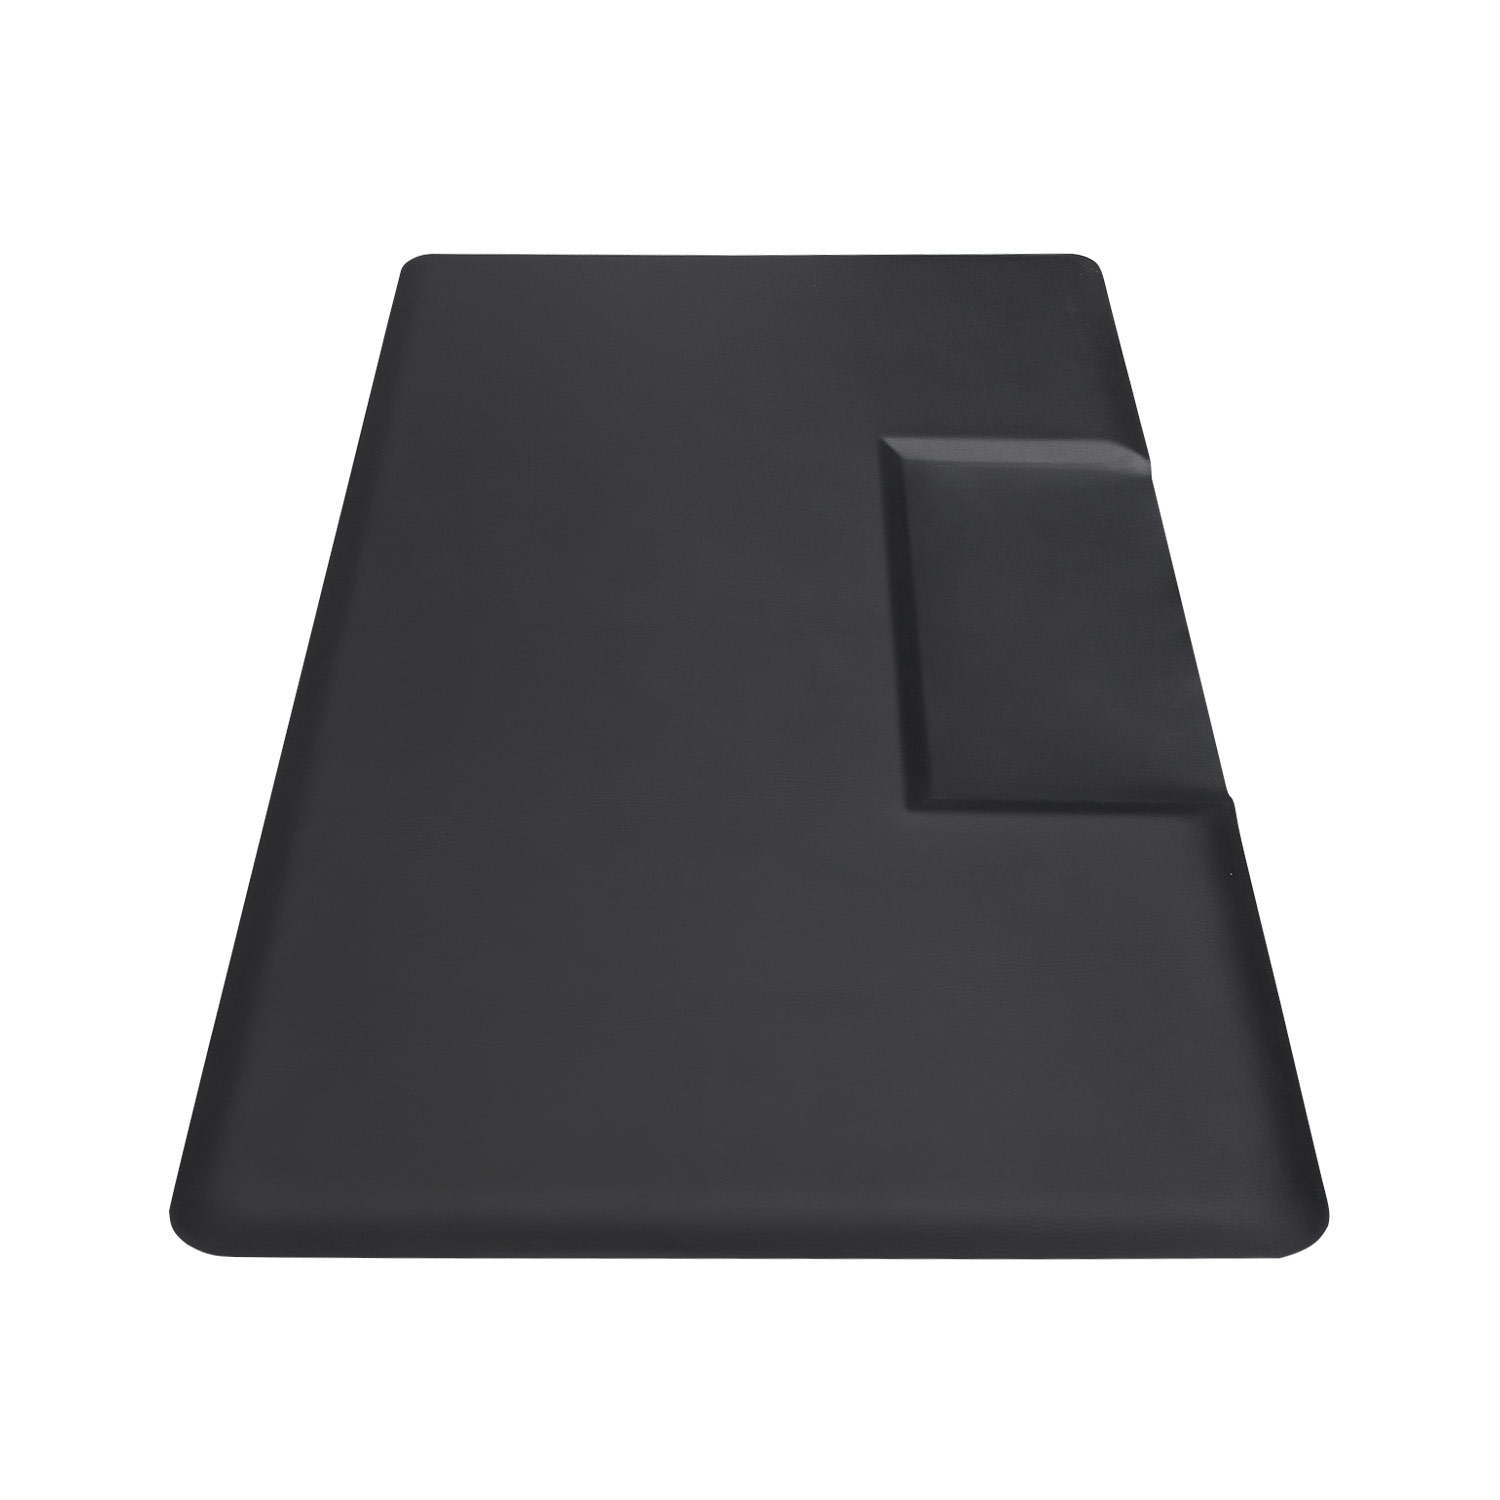 Rectangular 3x5 Anti-Fatigue Salon Chair Mat With Square Impression alternative product image 1